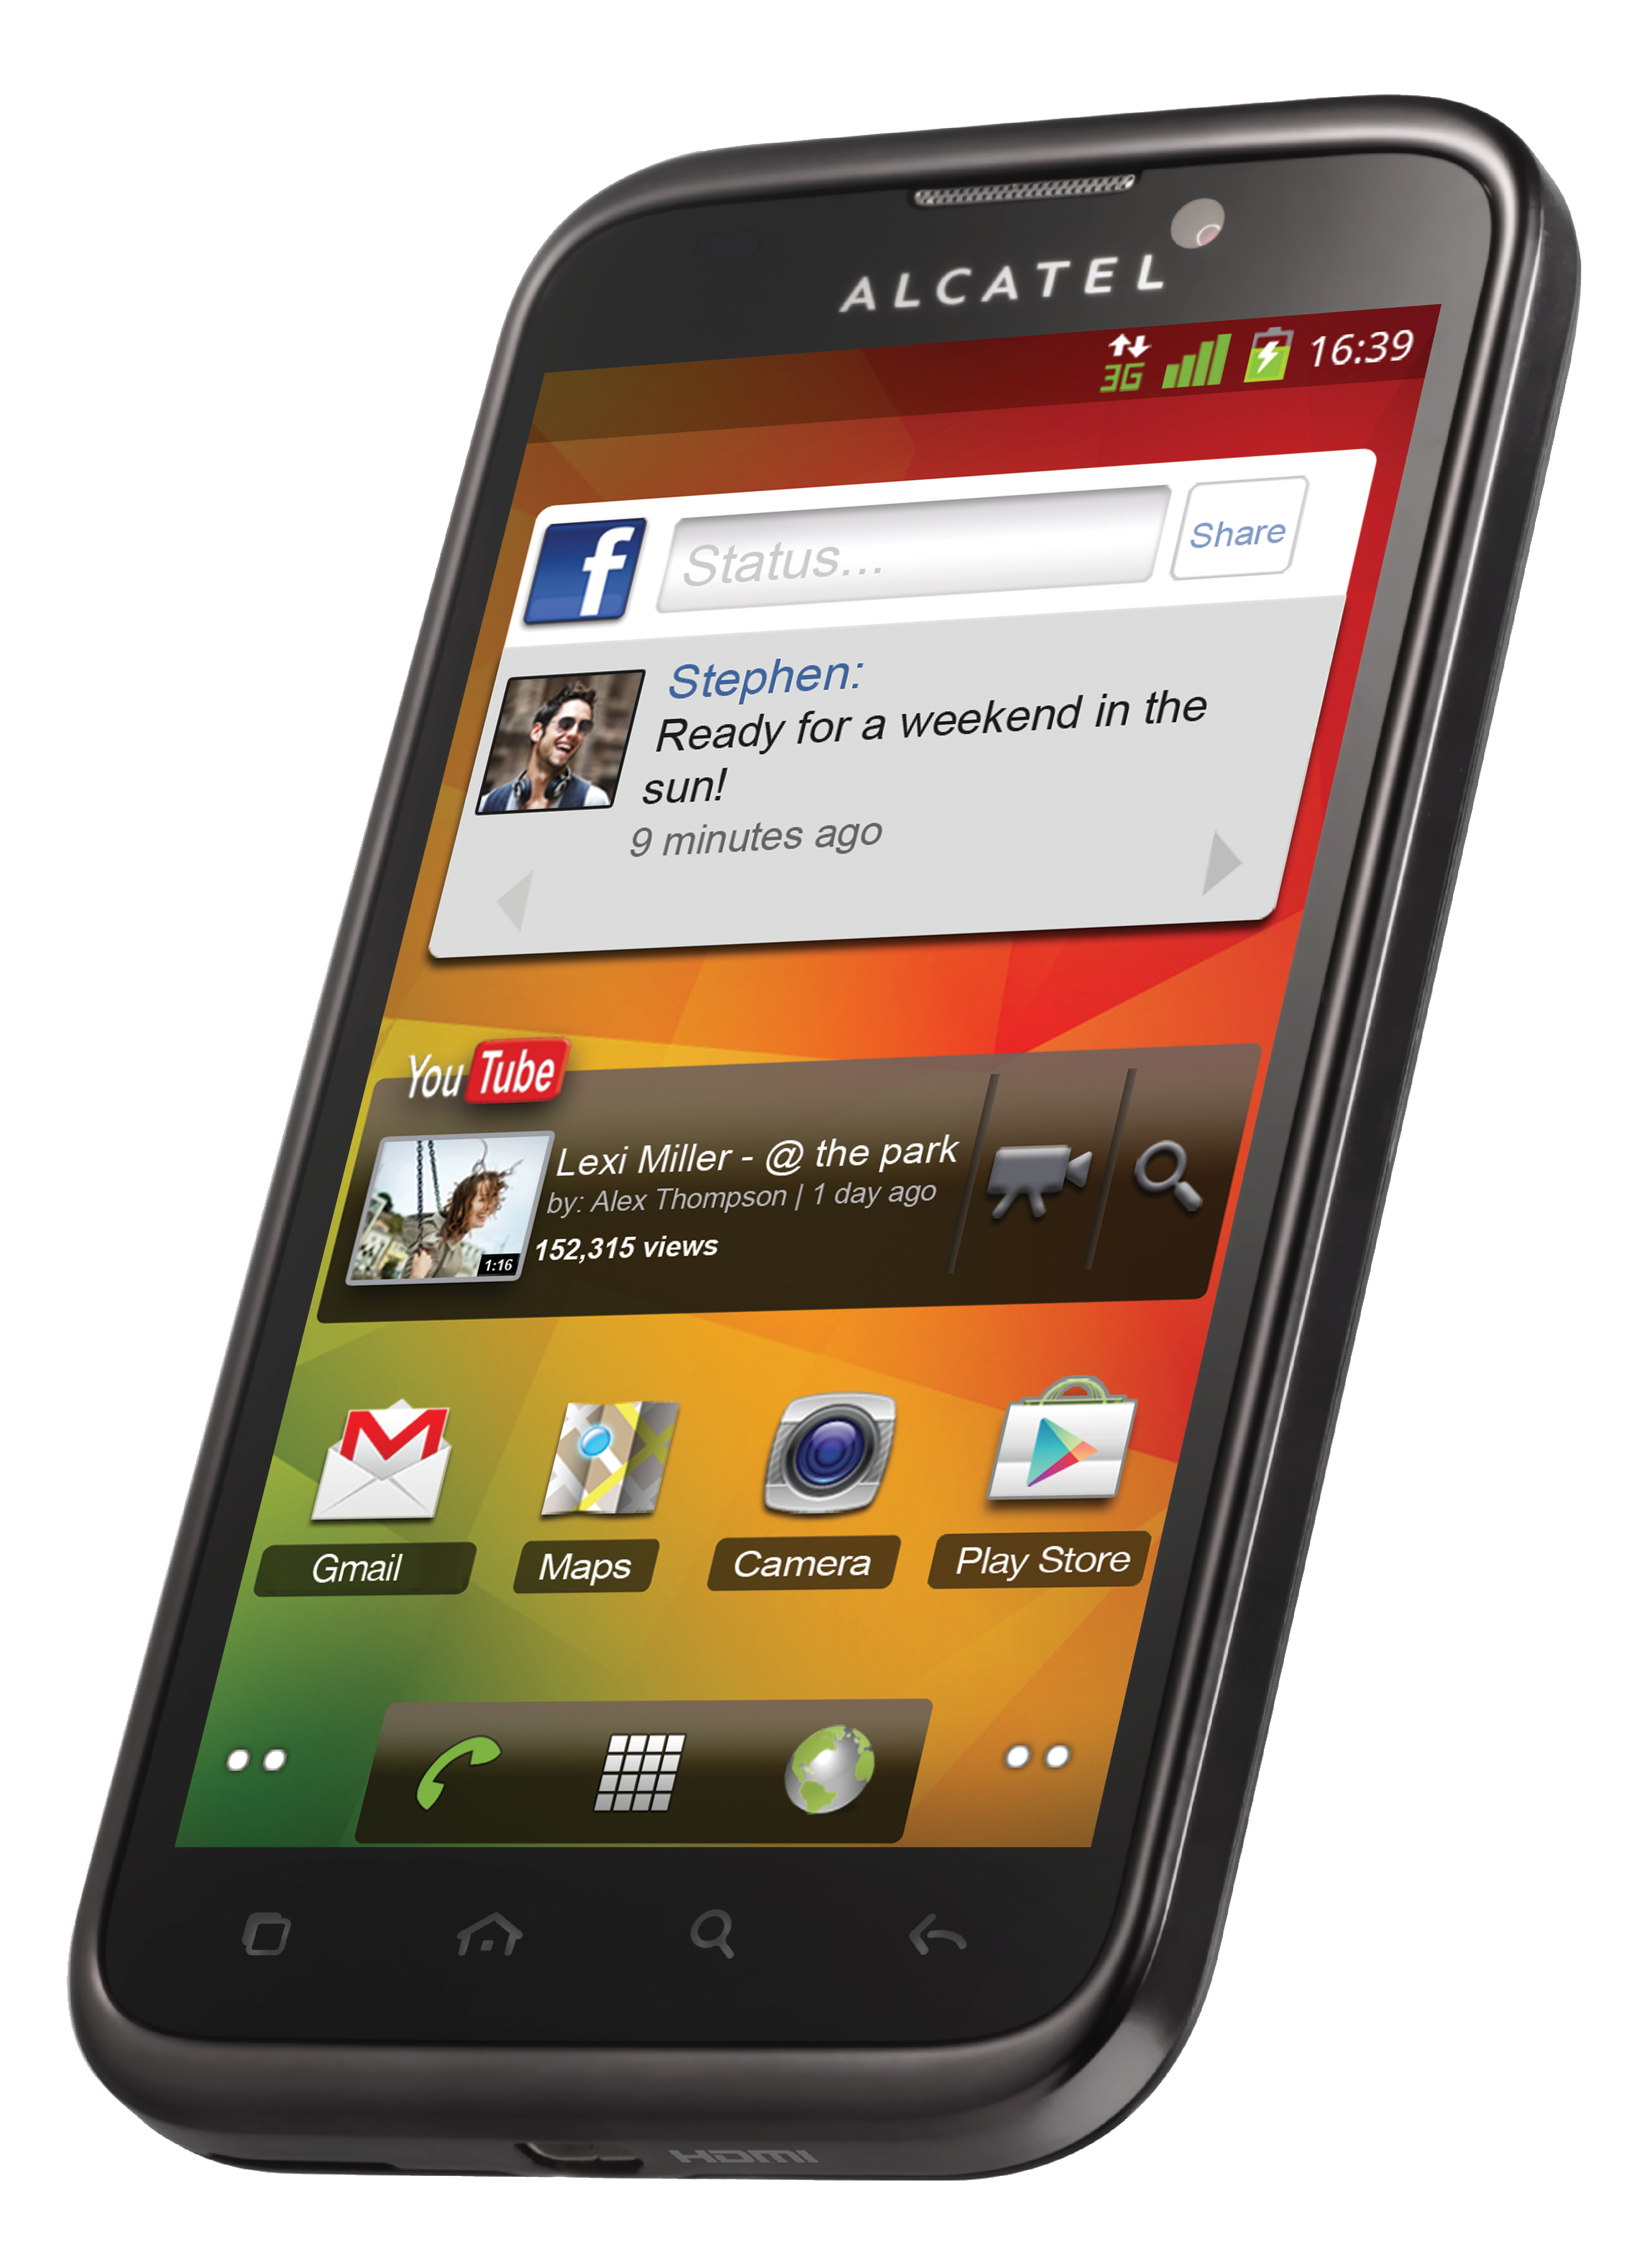 Alcatel 995 Phone, How to find out, Android smartphone